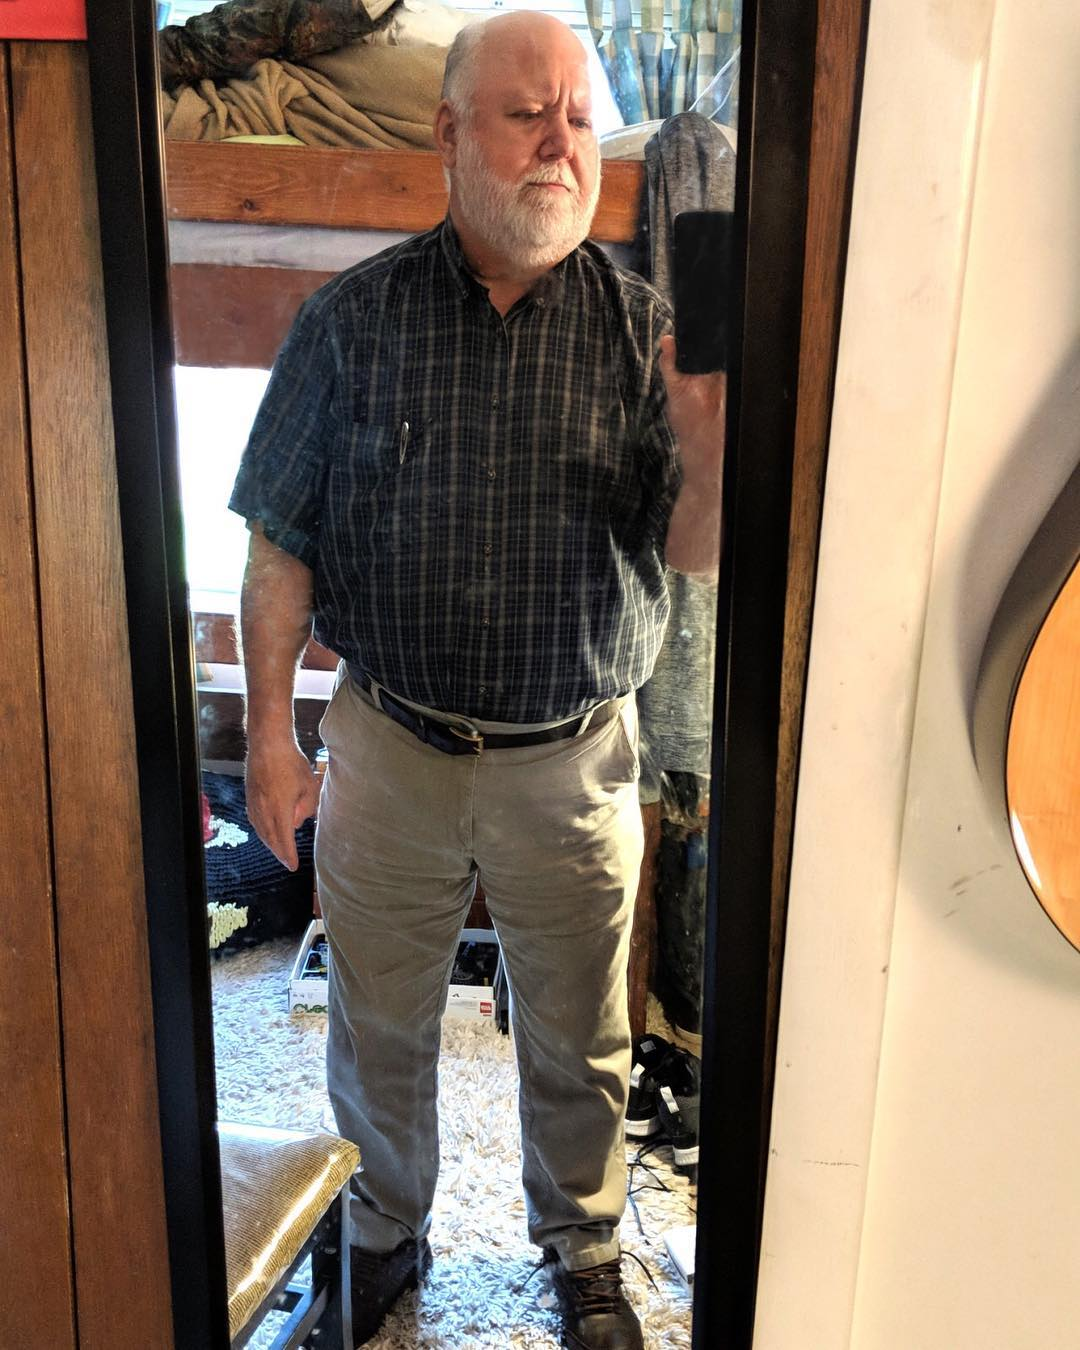 Greg in his room taking a photo of himself in the mirror